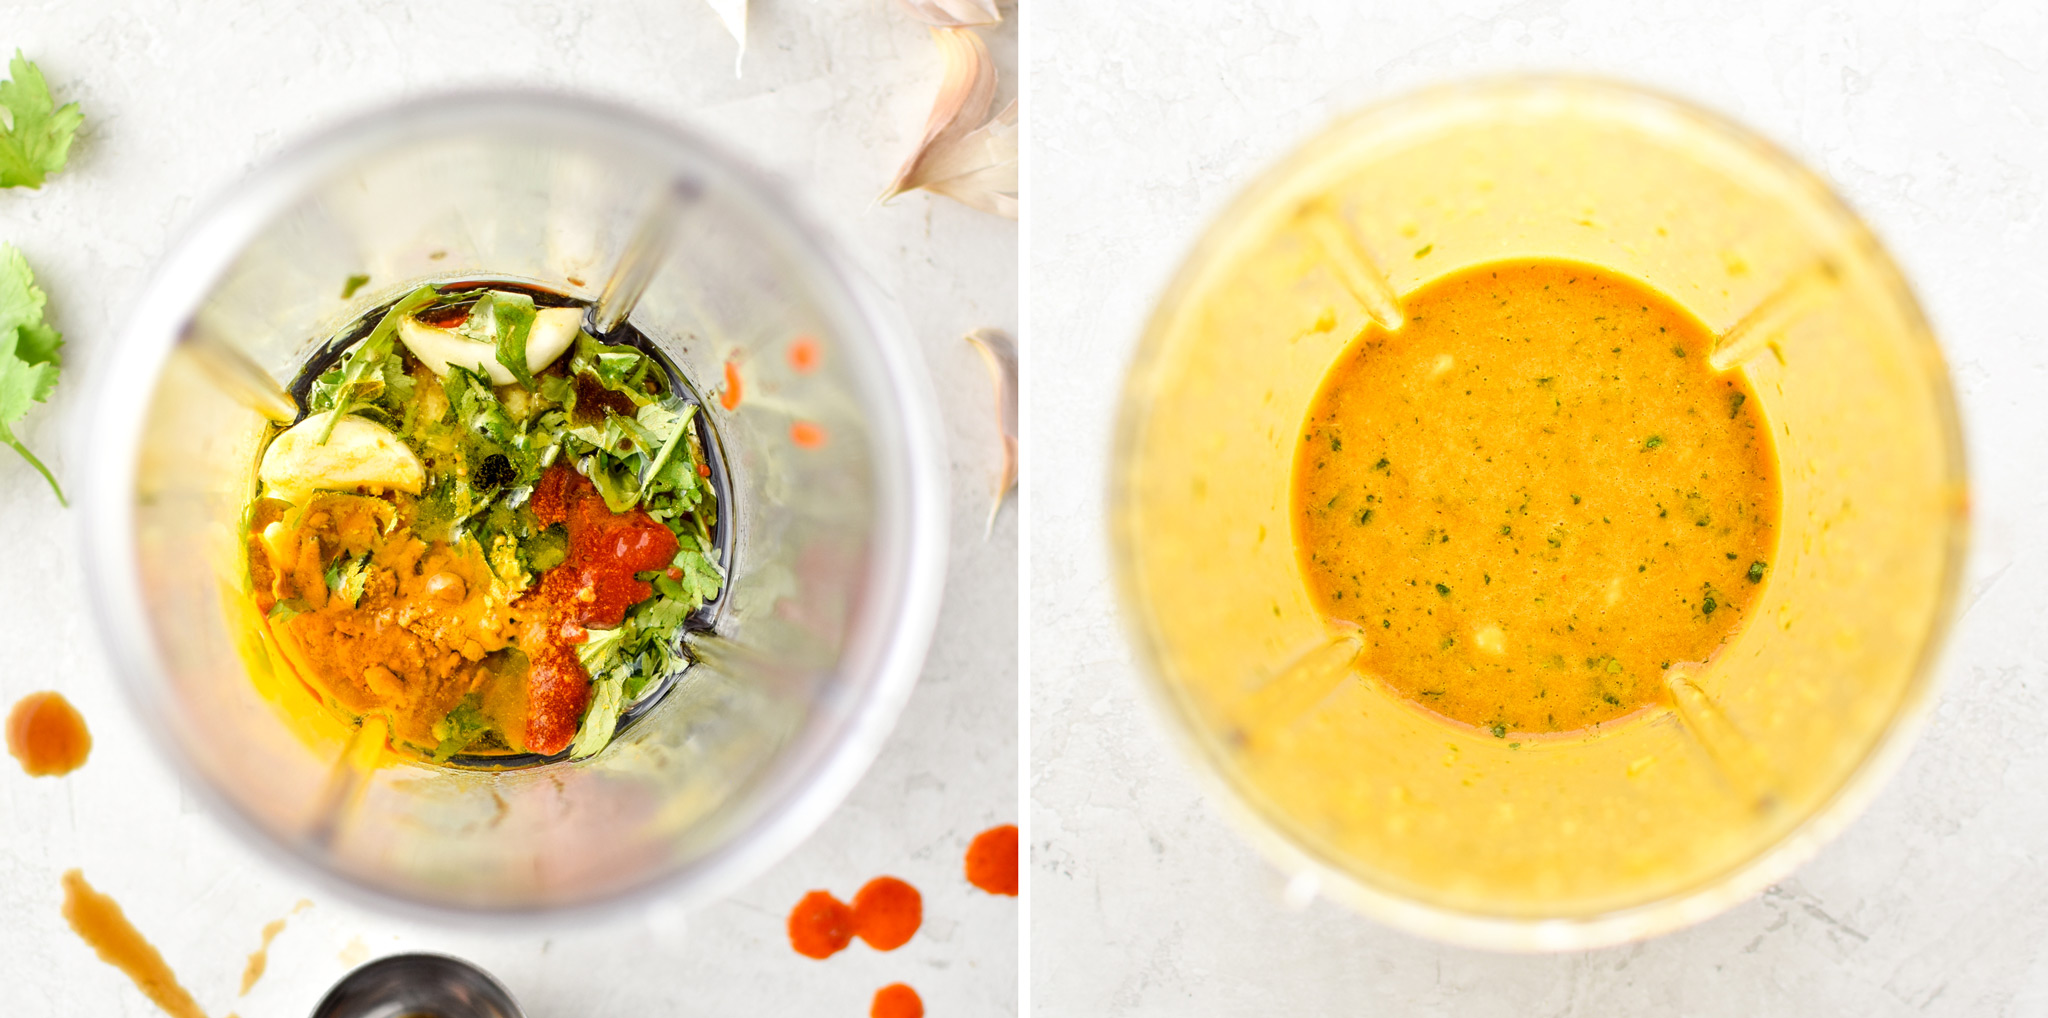 Making homemade marinade sauce - how to meal prep and eat different meals every day